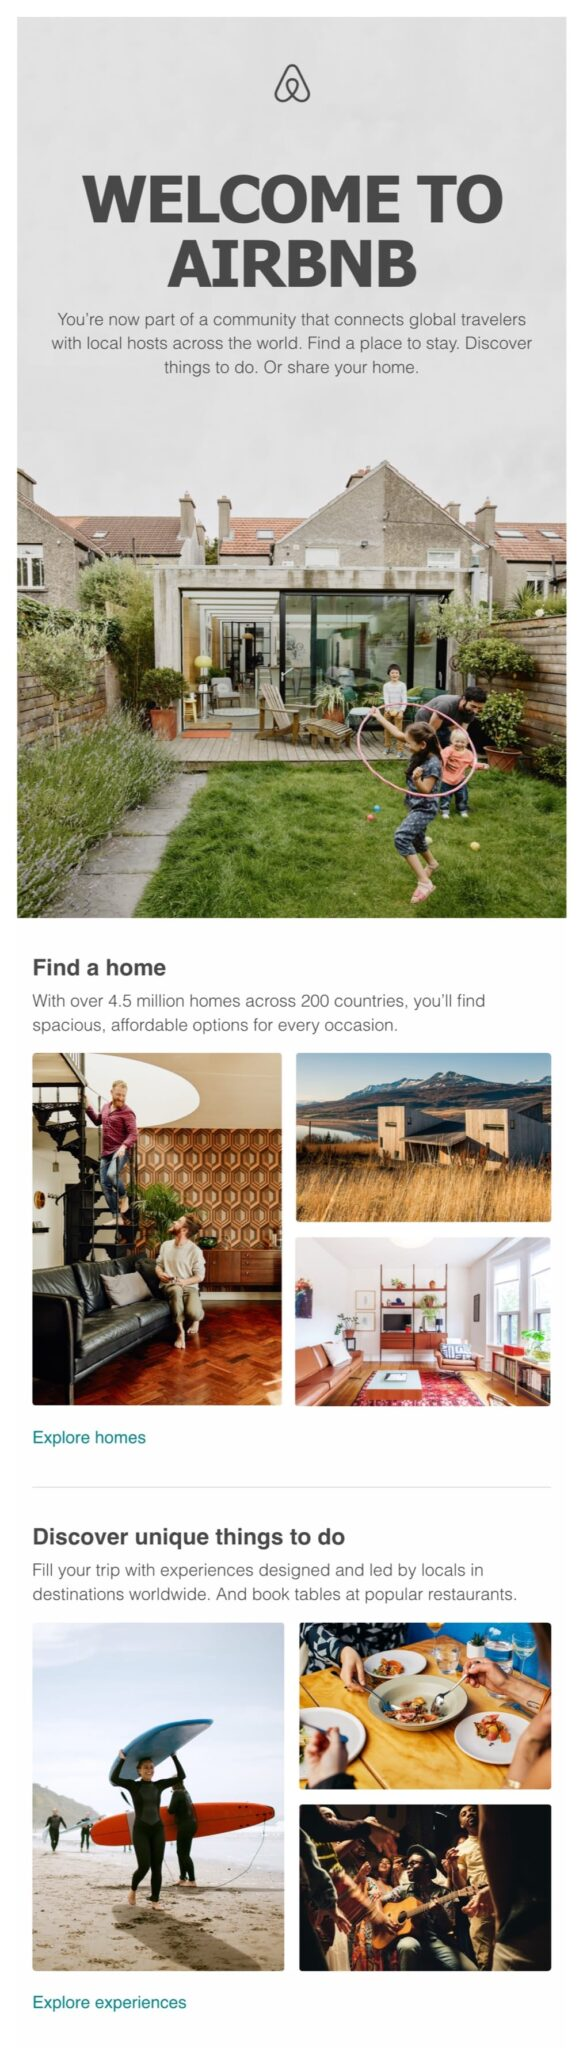 welcome email example airbnb